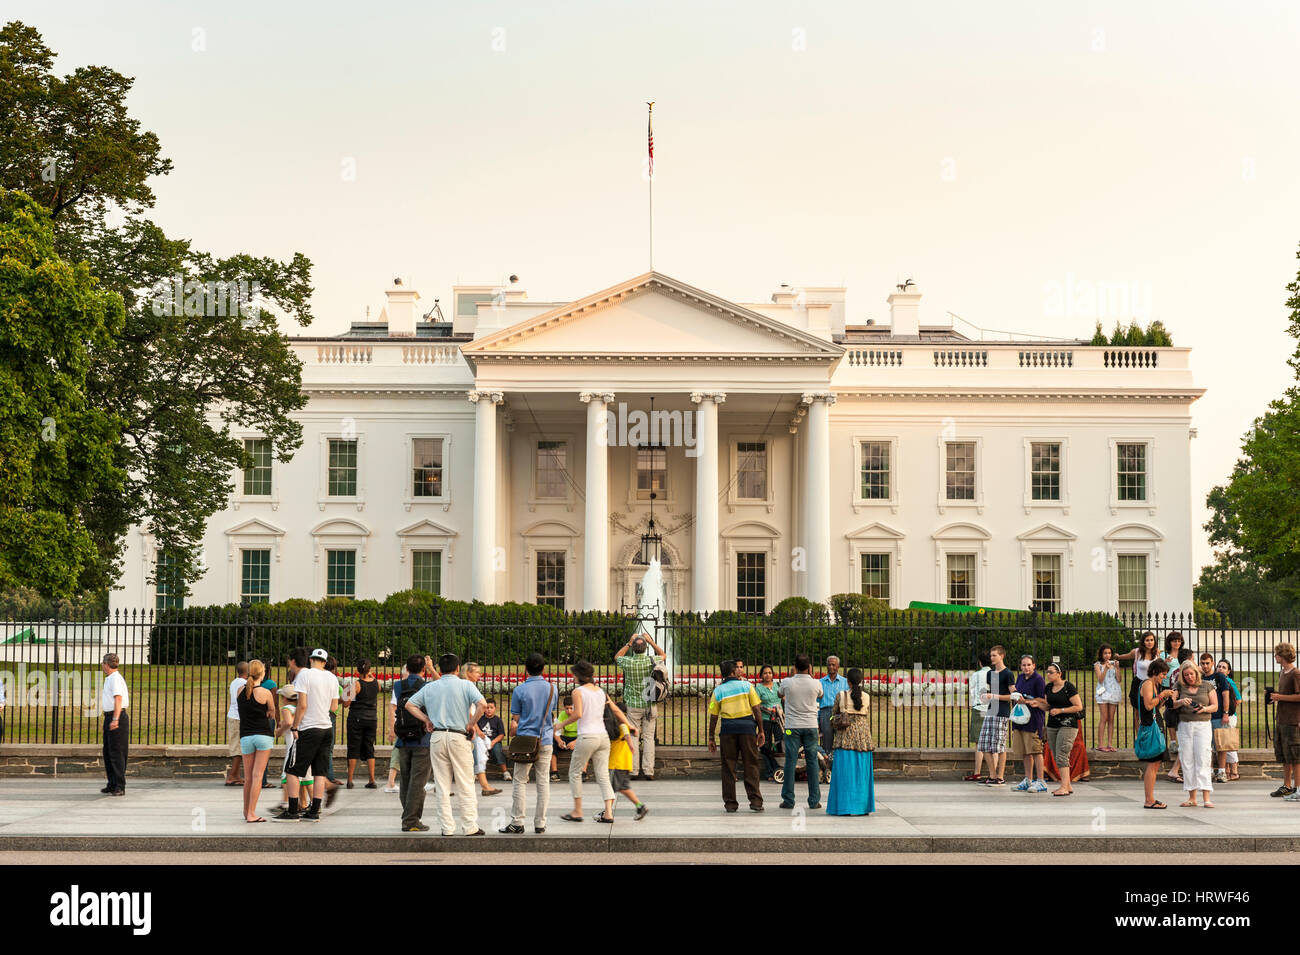 Tourists stand in front of the White House in Washington, D.C., USA. - Stock Image